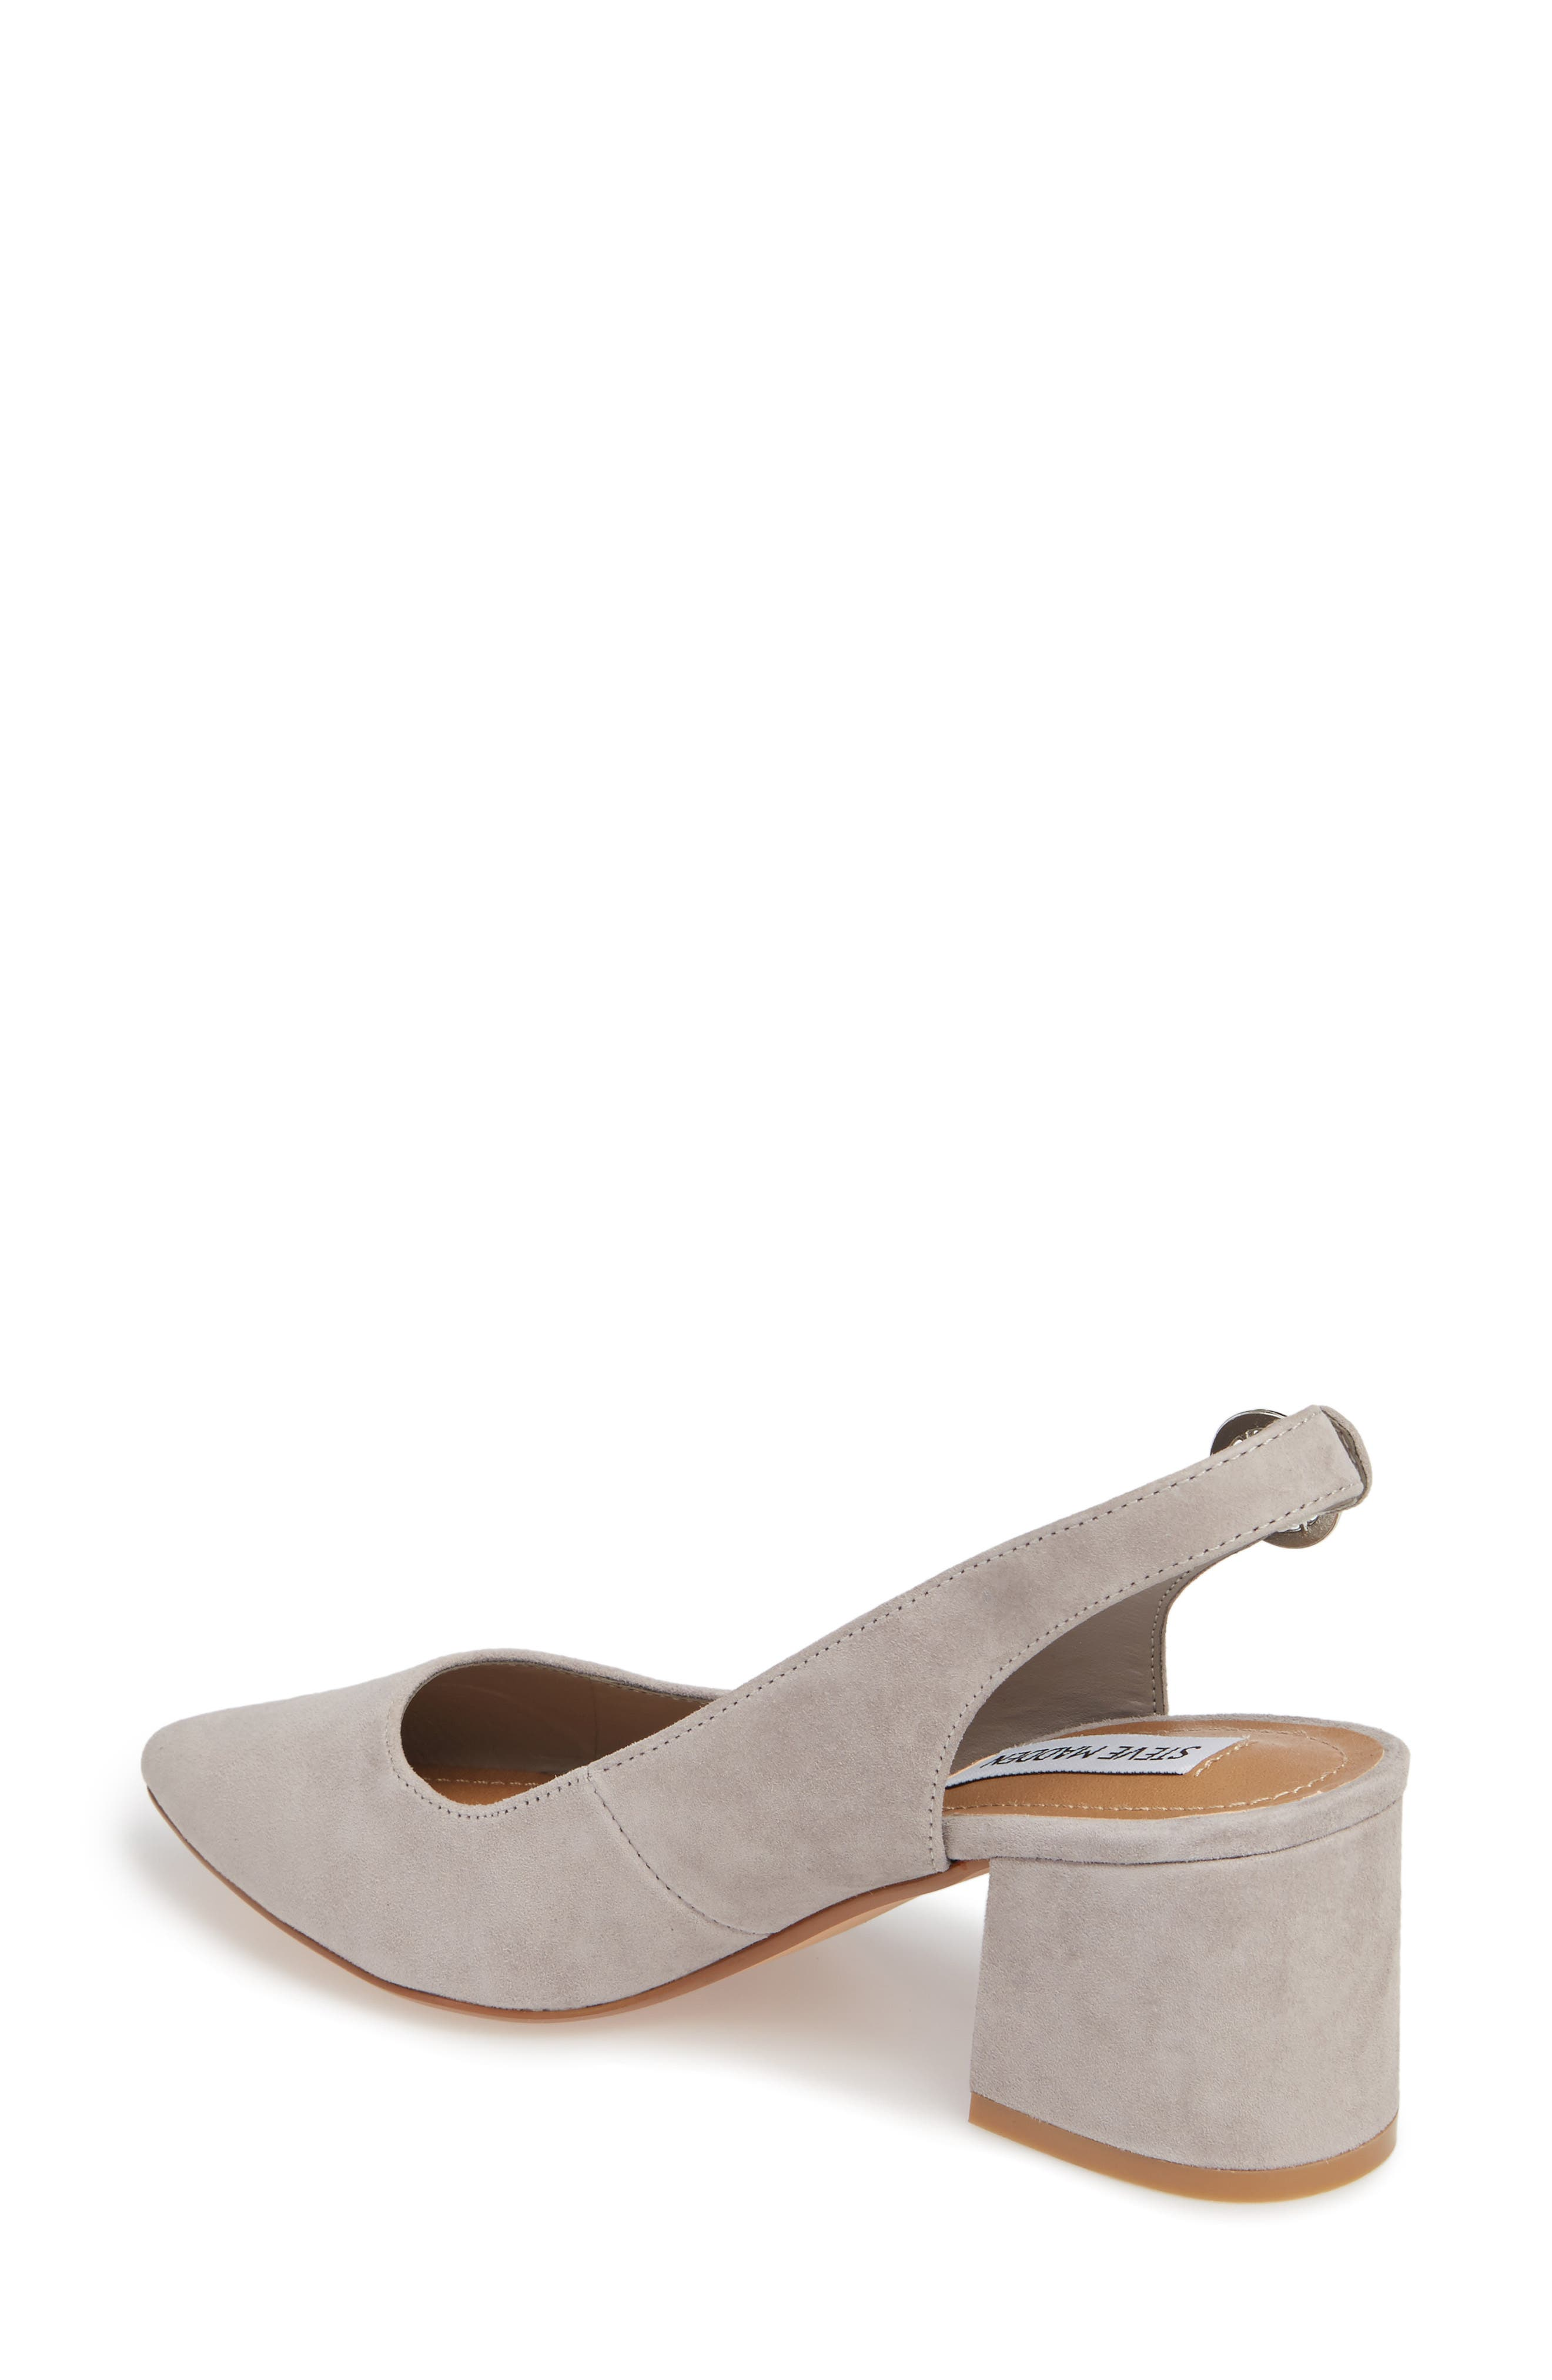 Dizzy Slingback Pump,                             Alternate thumbnail 2, color,                             Grey Suede